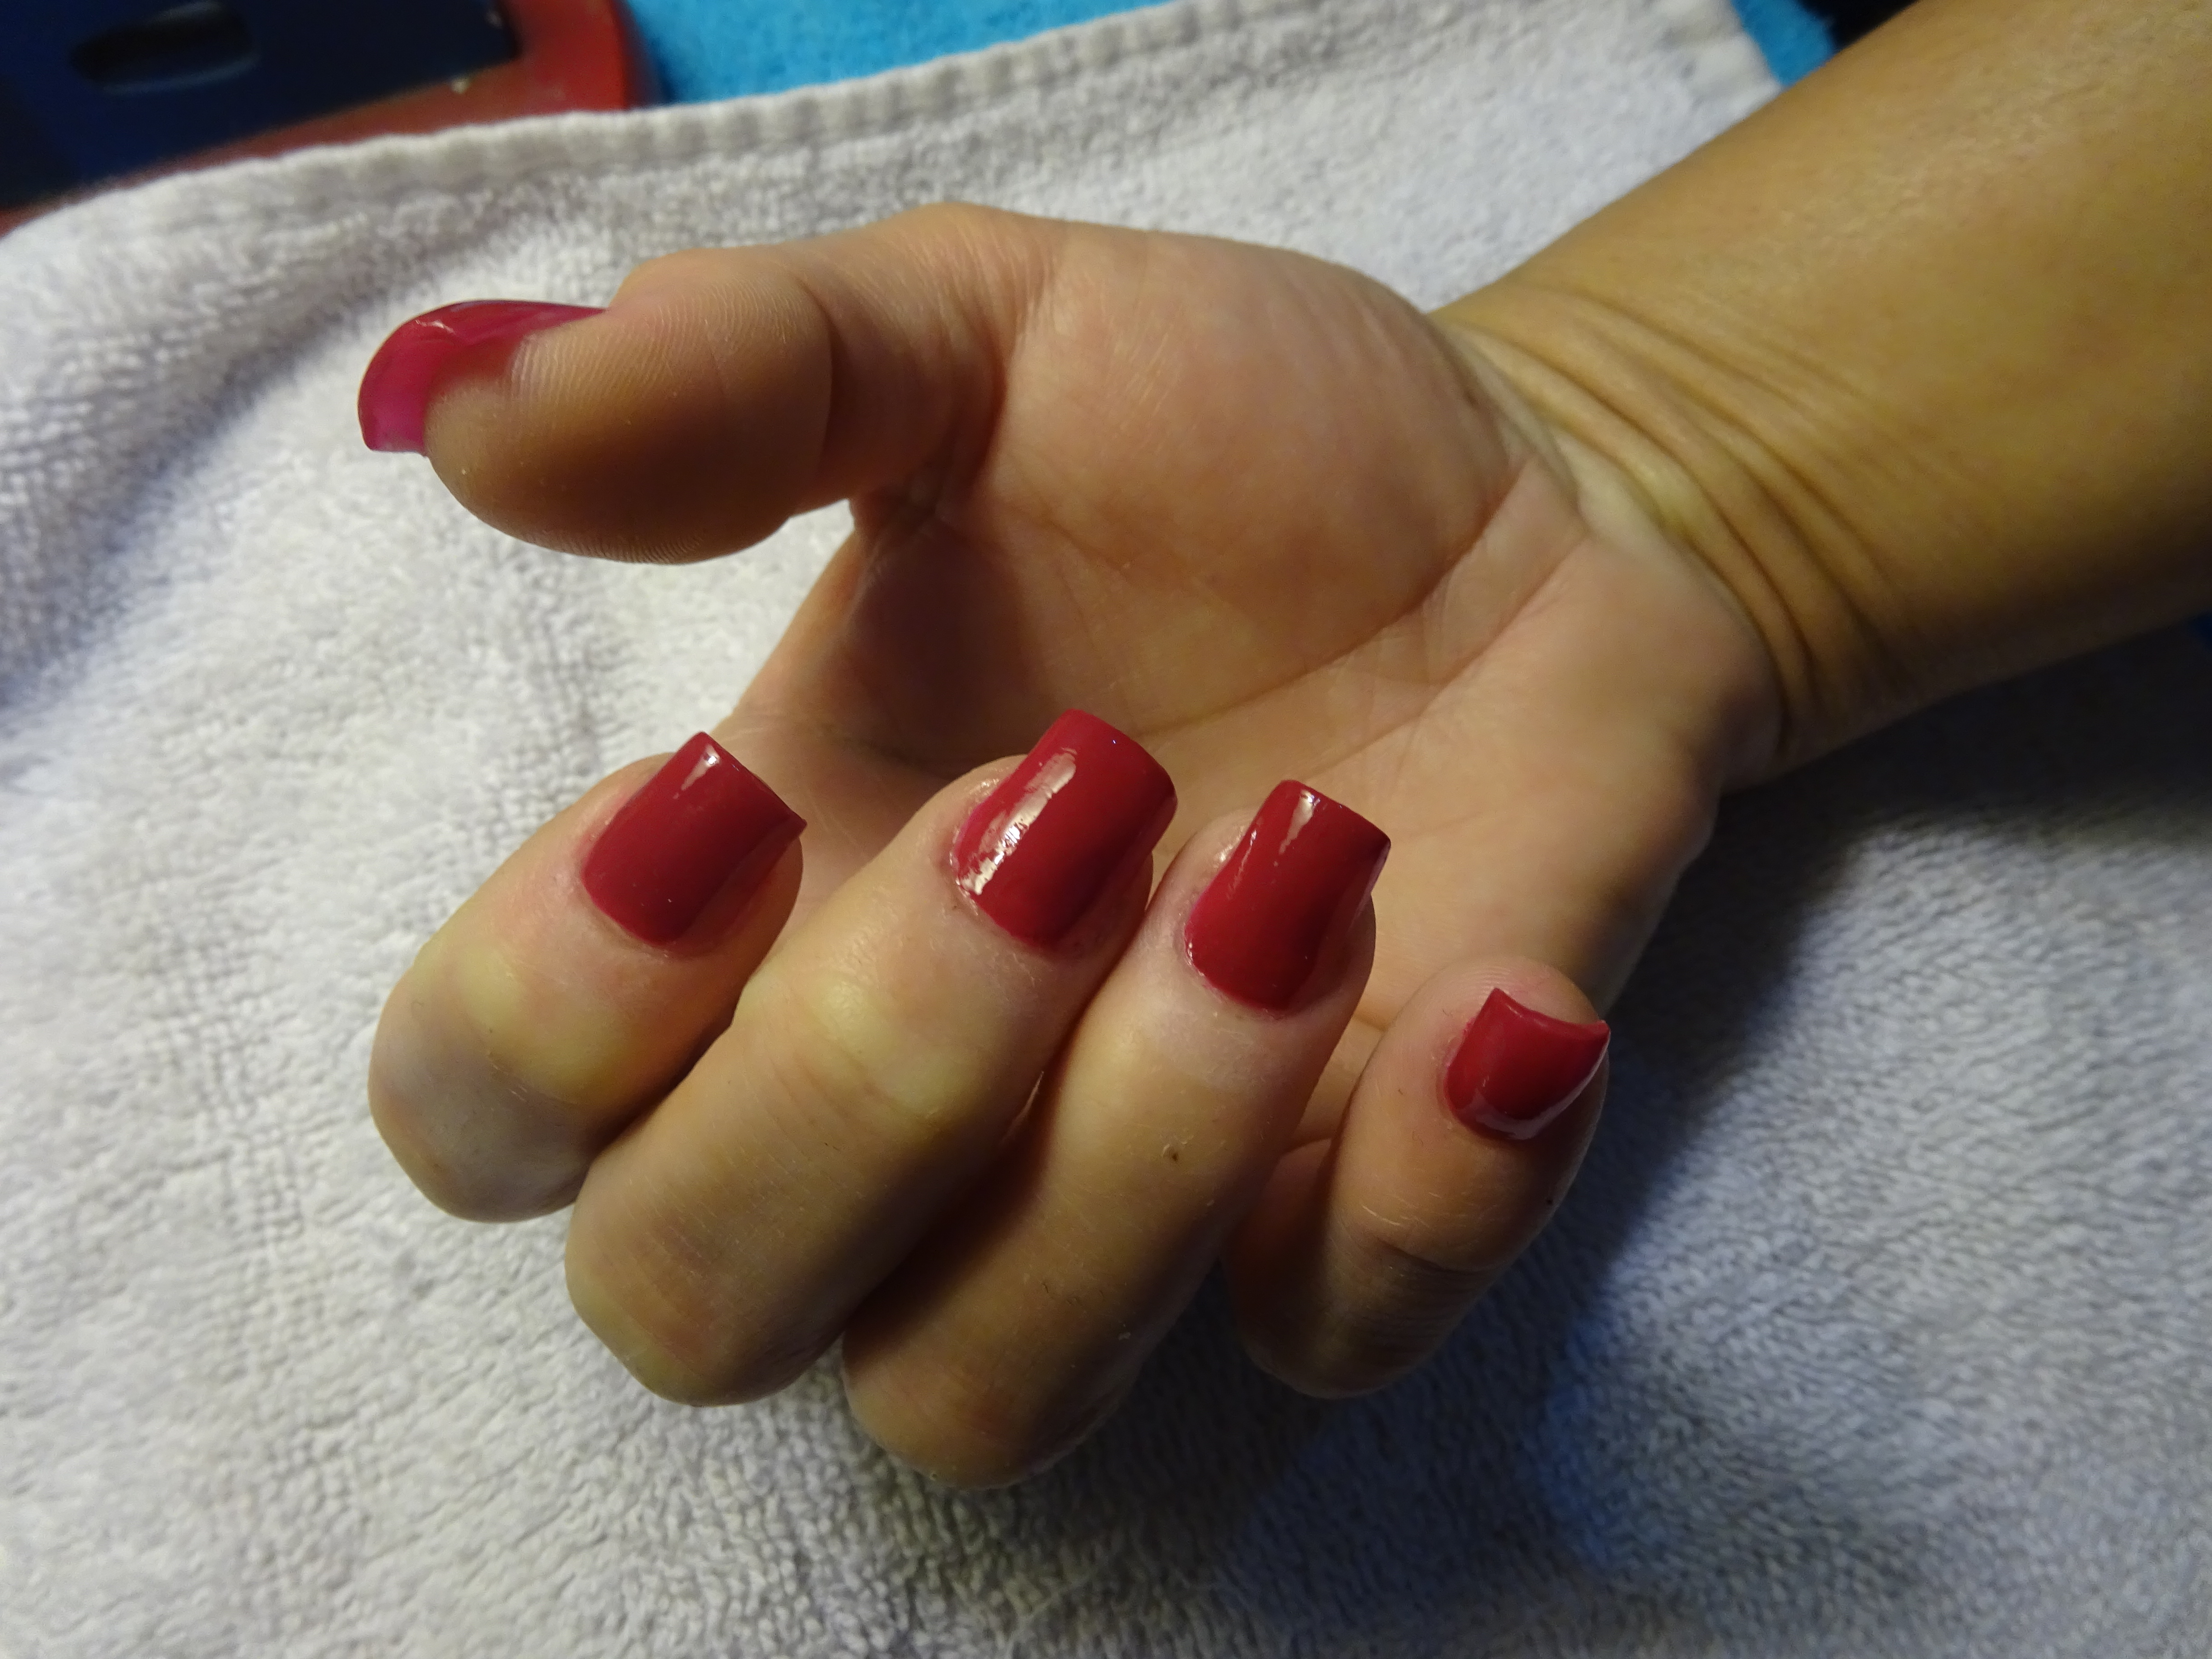 Nuevas tendencias de u as isa nails p gina 18 - Ultimas tendencias en unas ...